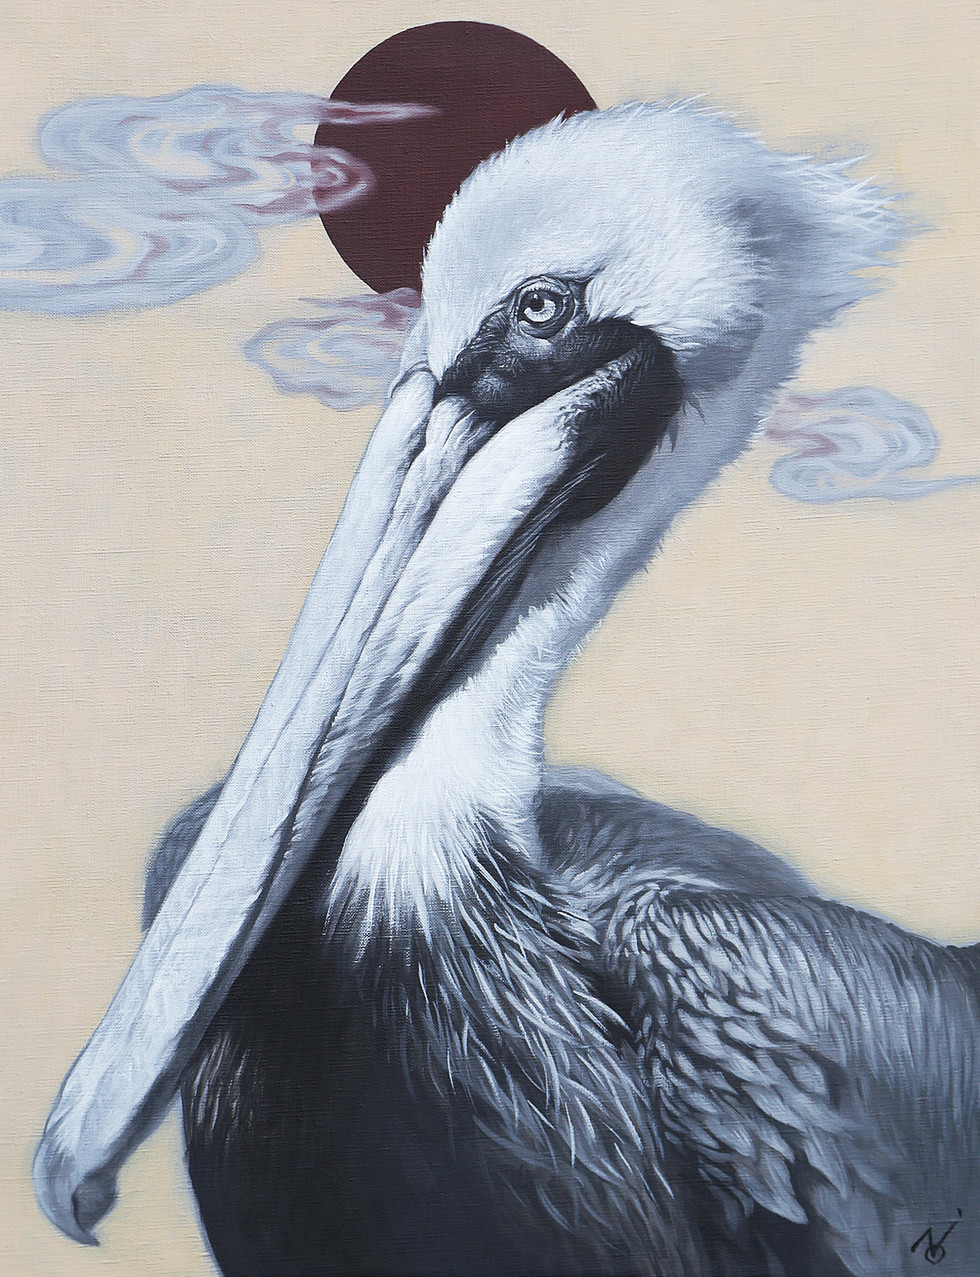 The Moment - Pelican / 2019 / Oil on canvs / 50 x 65.2 x 2 cm